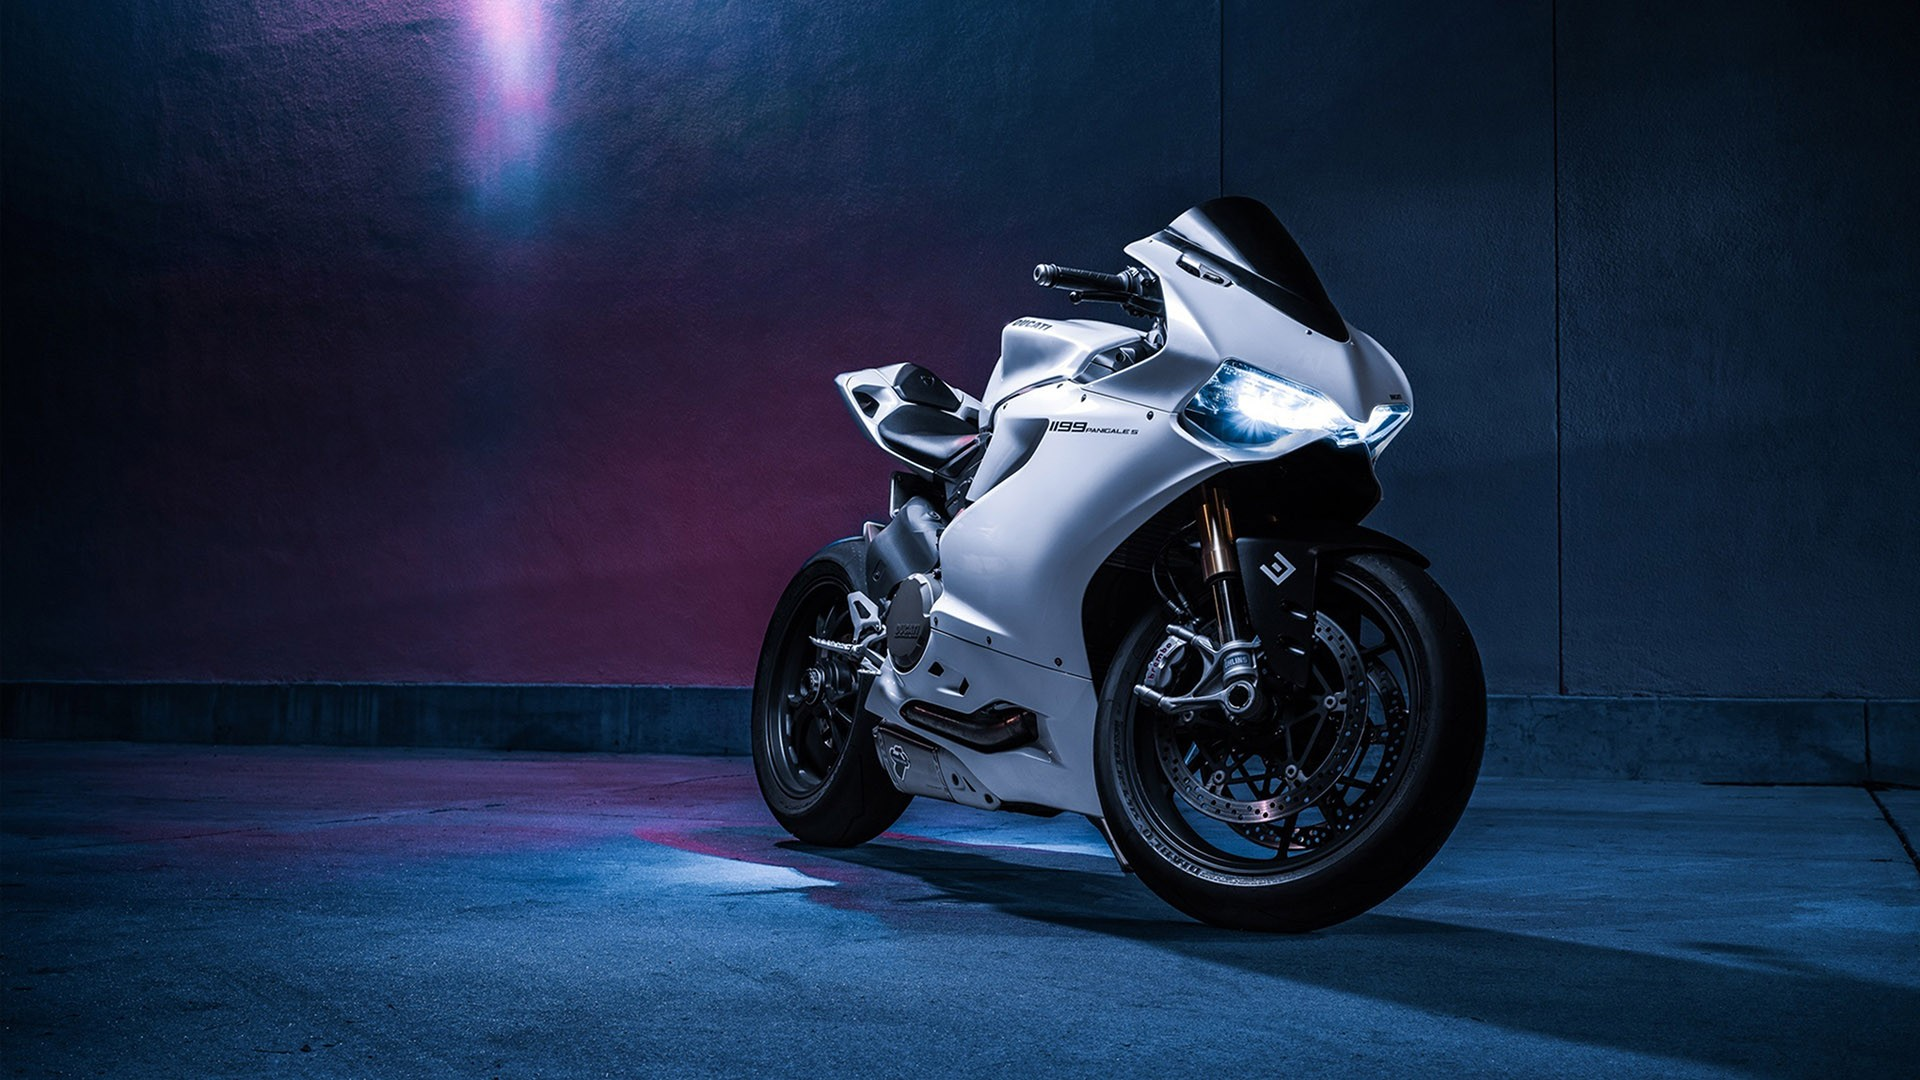 Sportbike Wallpaper HD